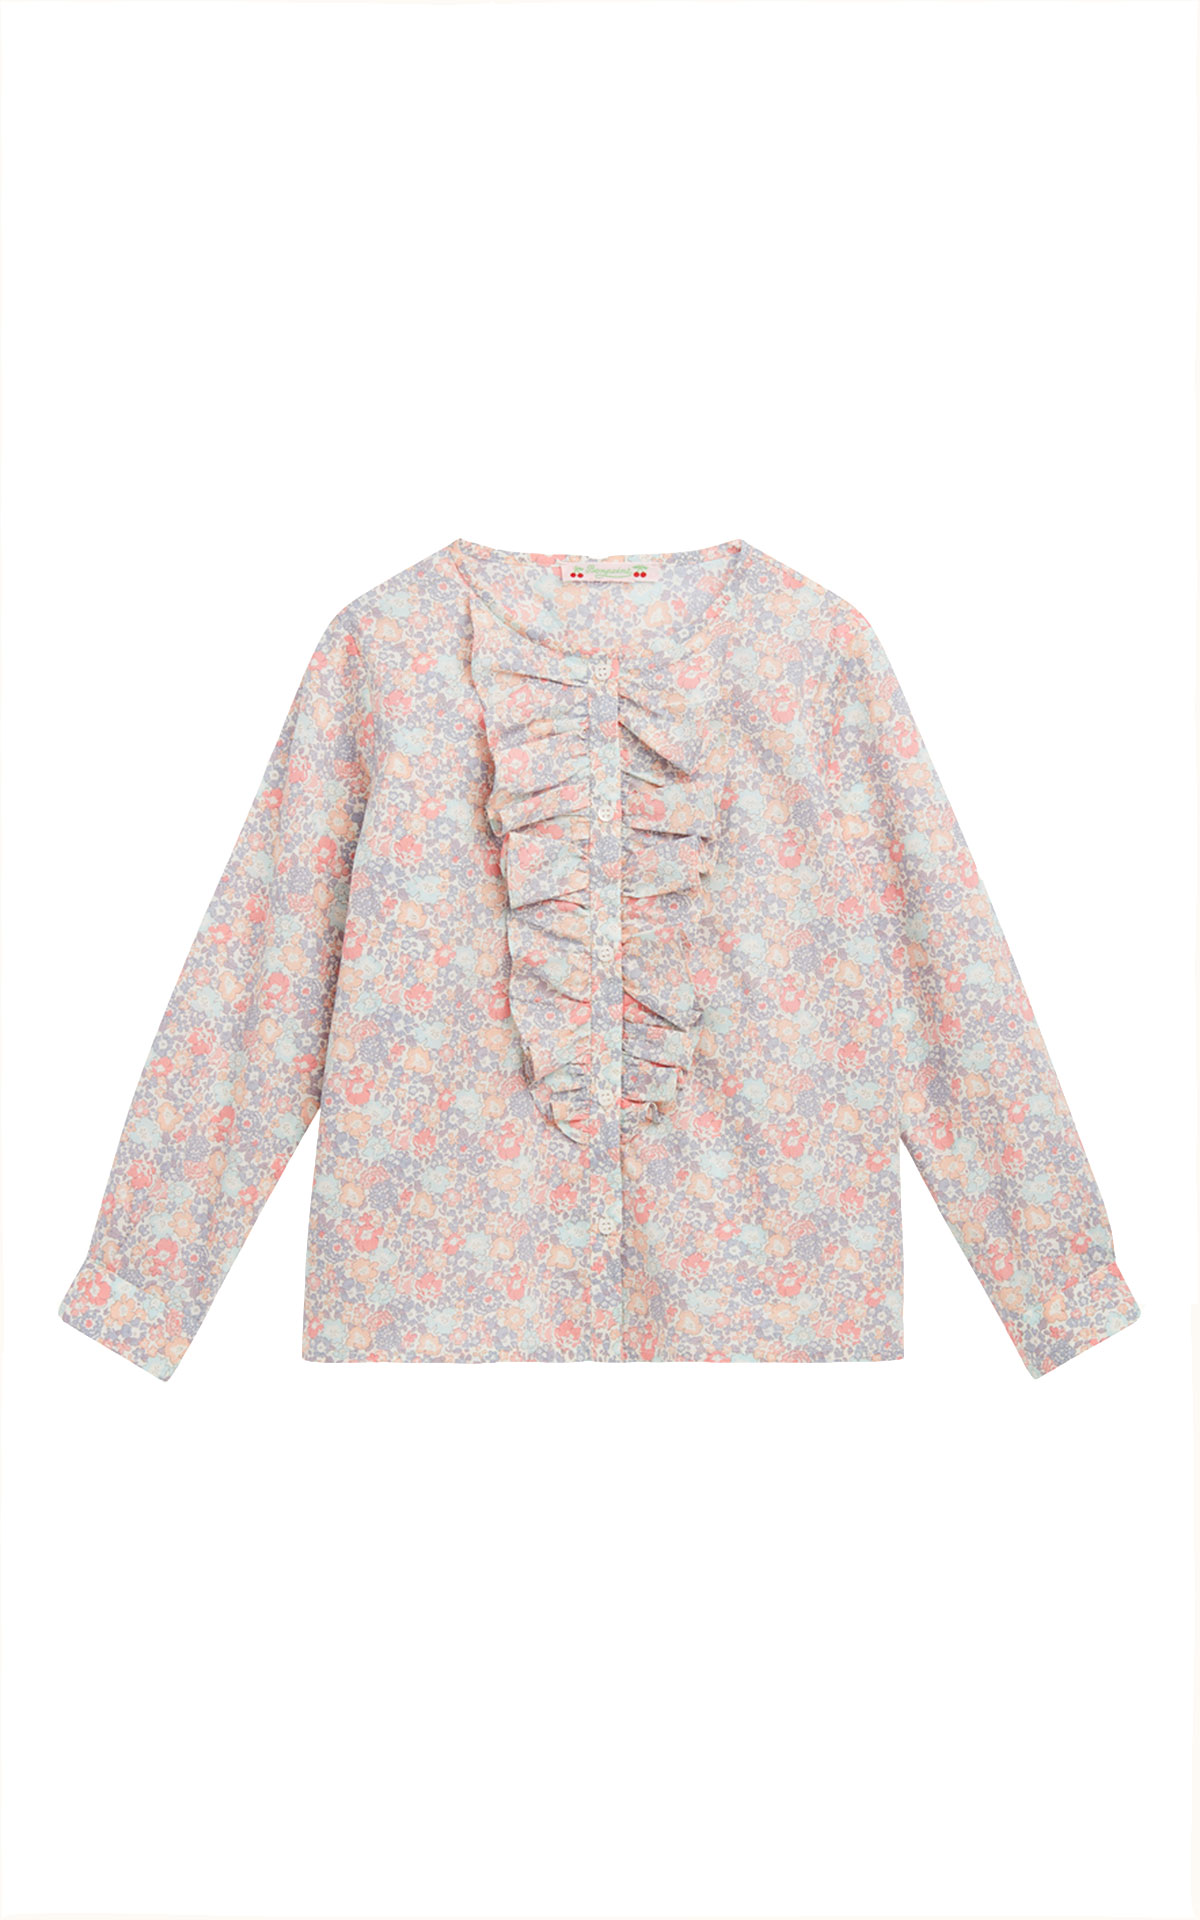 Bonpoint Floral top from Bicester Village